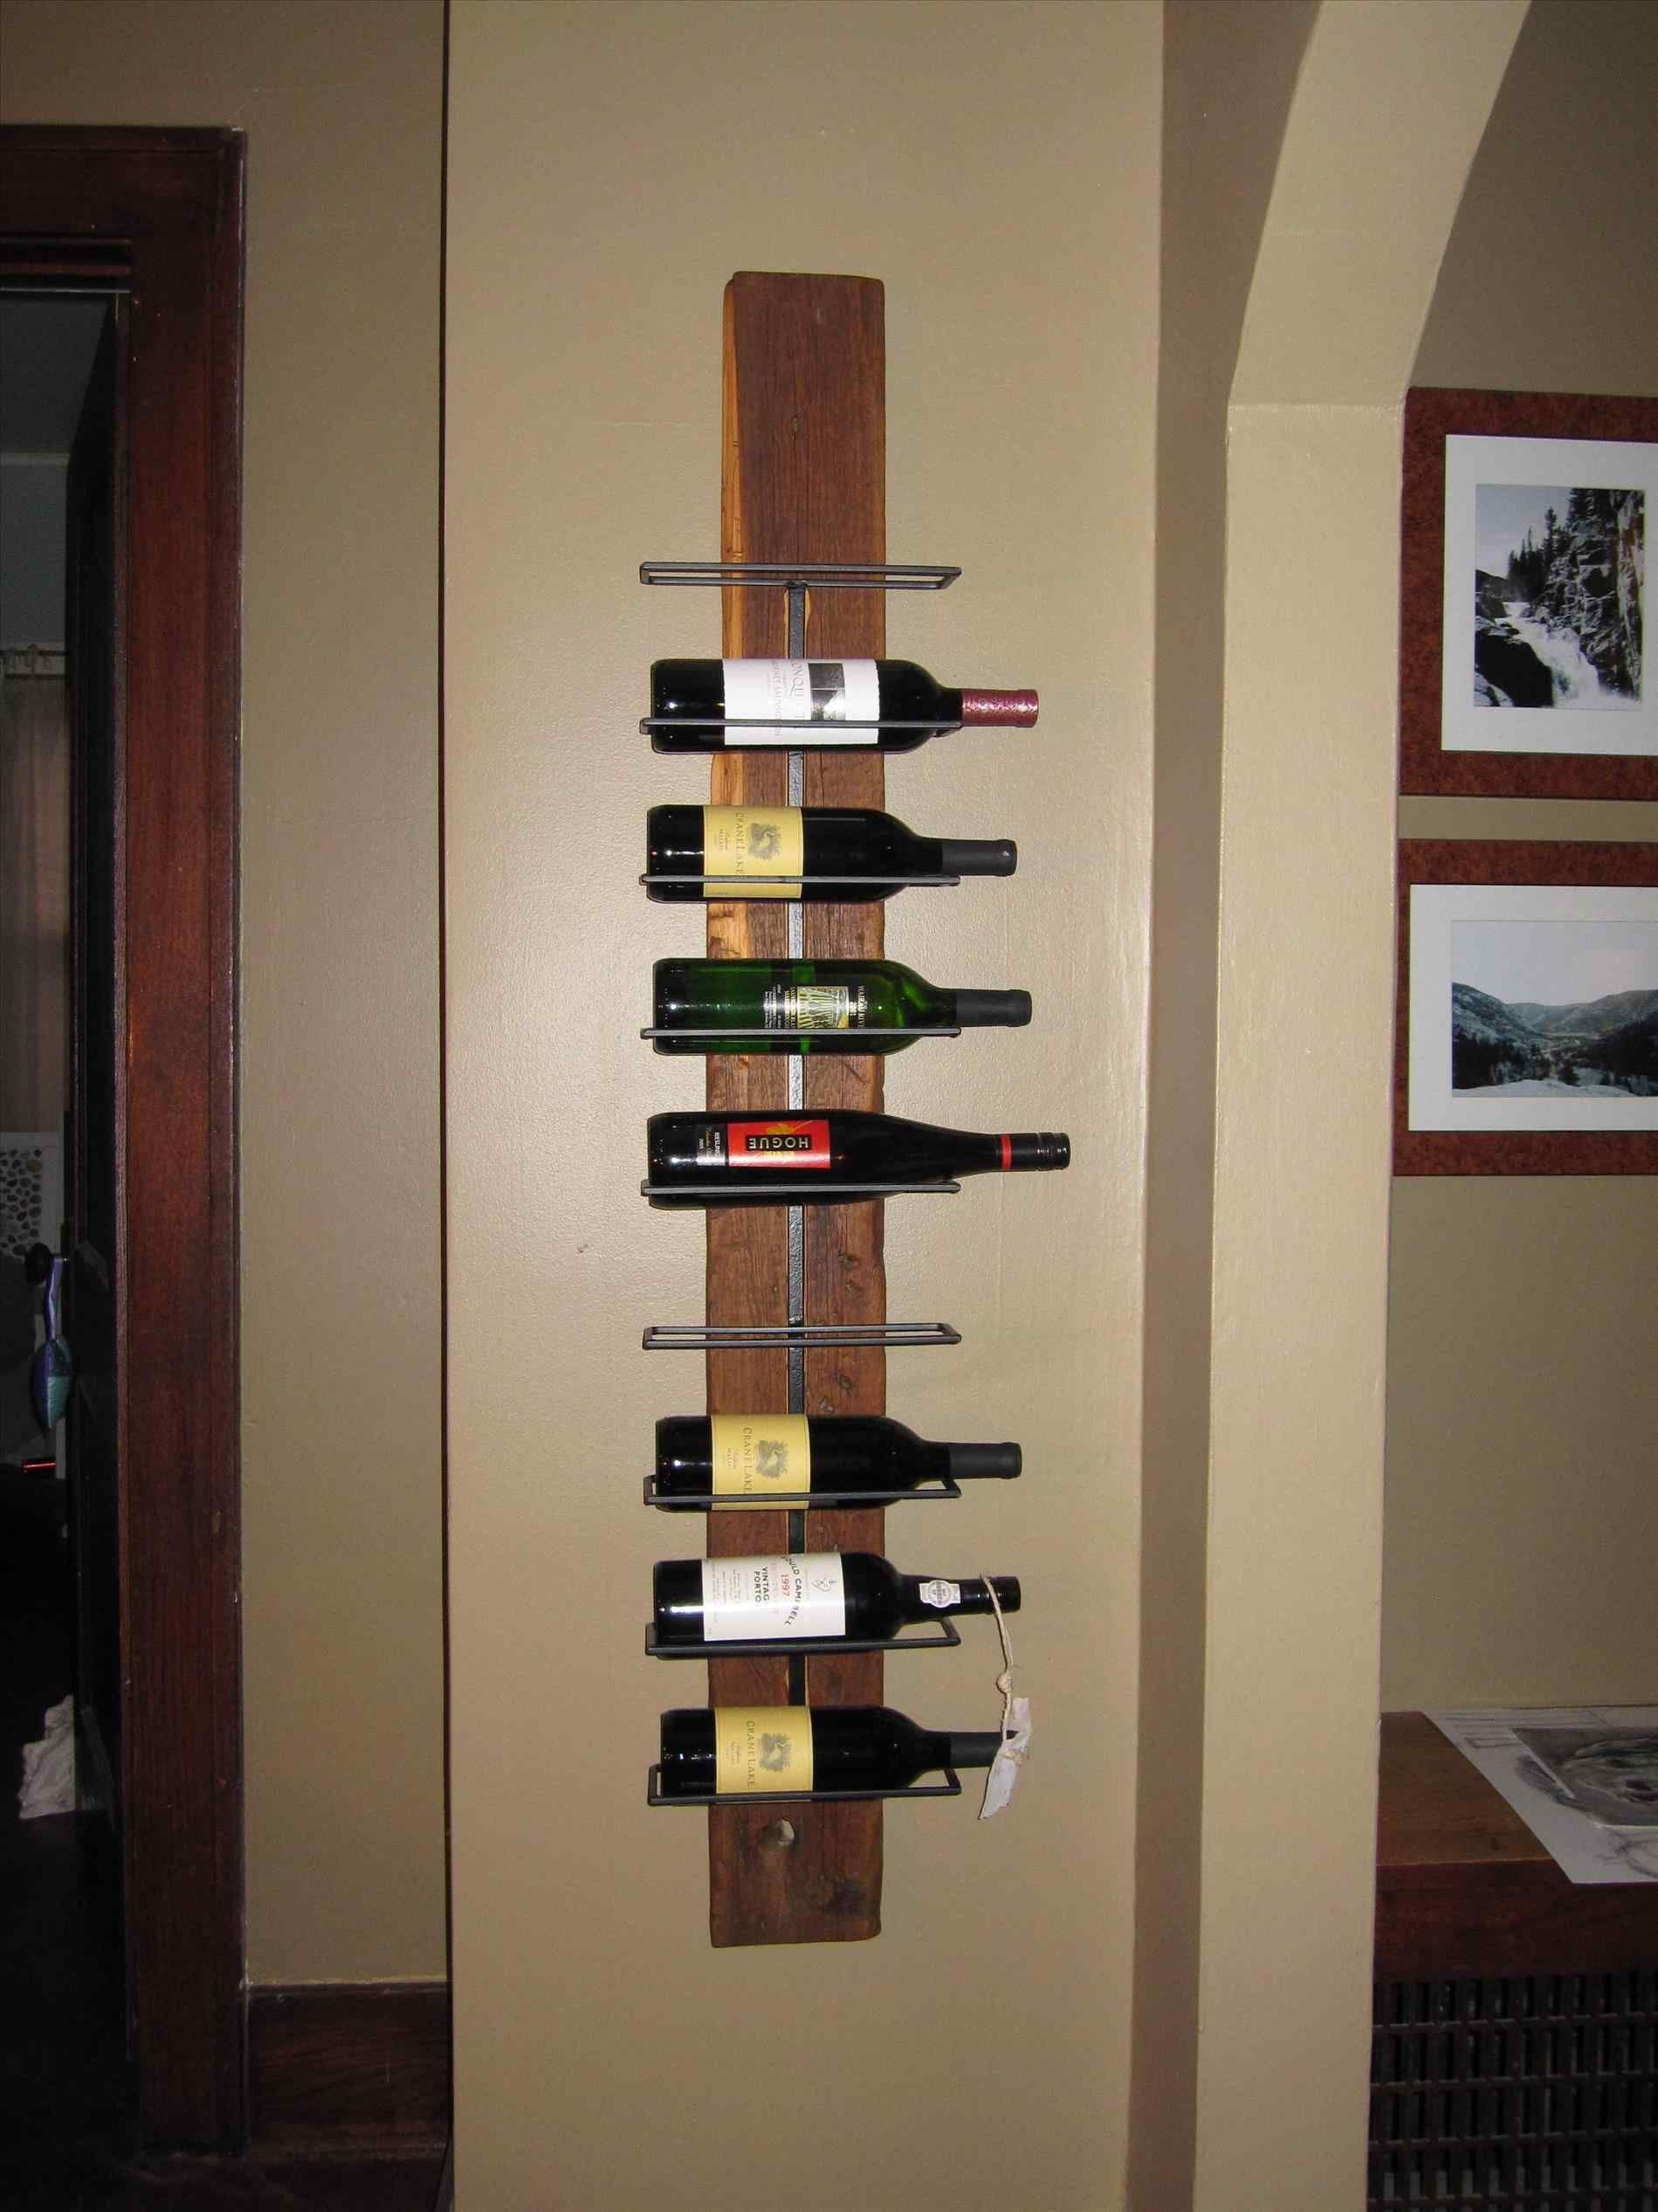 30 Stunning Wine Decorations Ideas For Kitchen Wine Rack Furniture Wine Decor Wine Rack